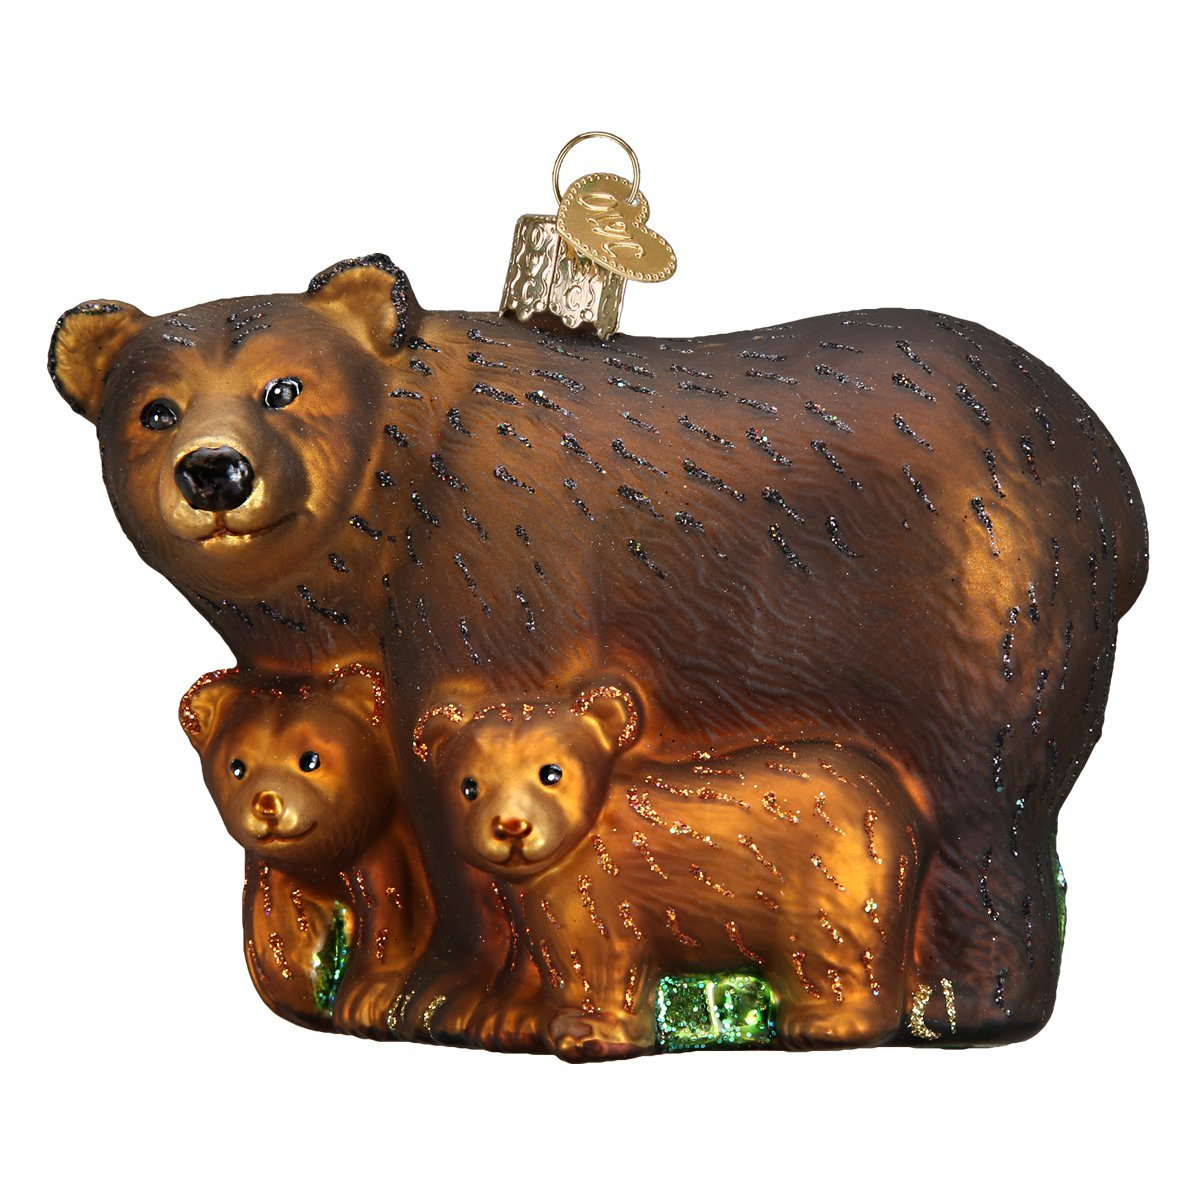 Cubs Christmas Ornaments.Old World Christmas Ornaments Bear With Cubs Glass Blown Ornaments For Christmas Tree